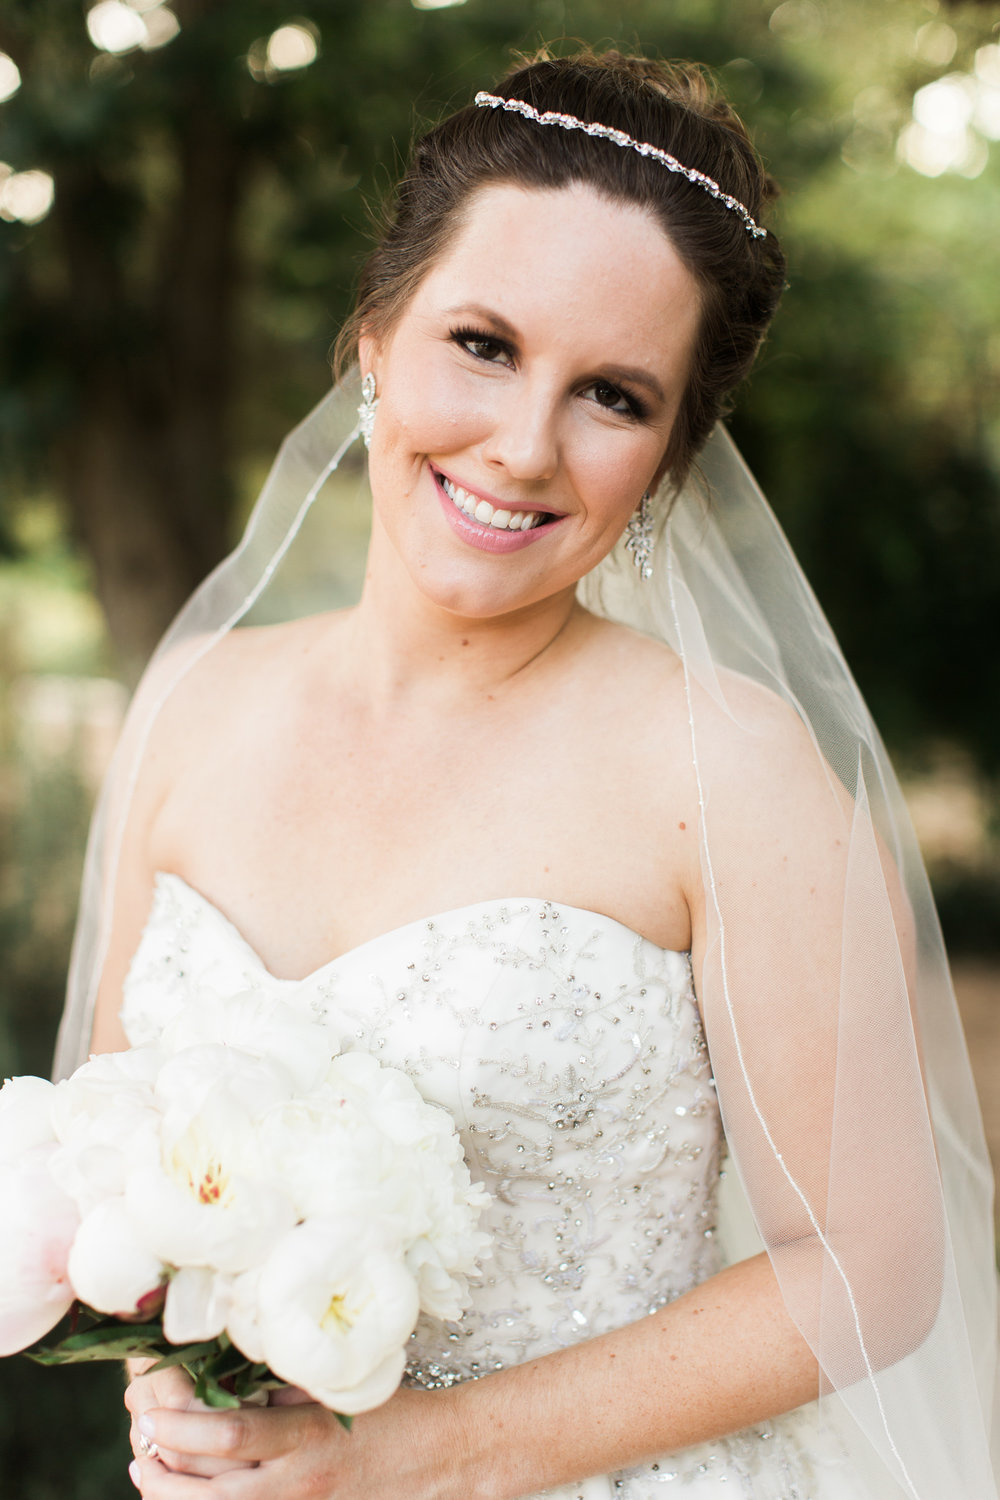 94ccc-waco_bridal_session-3.jpg